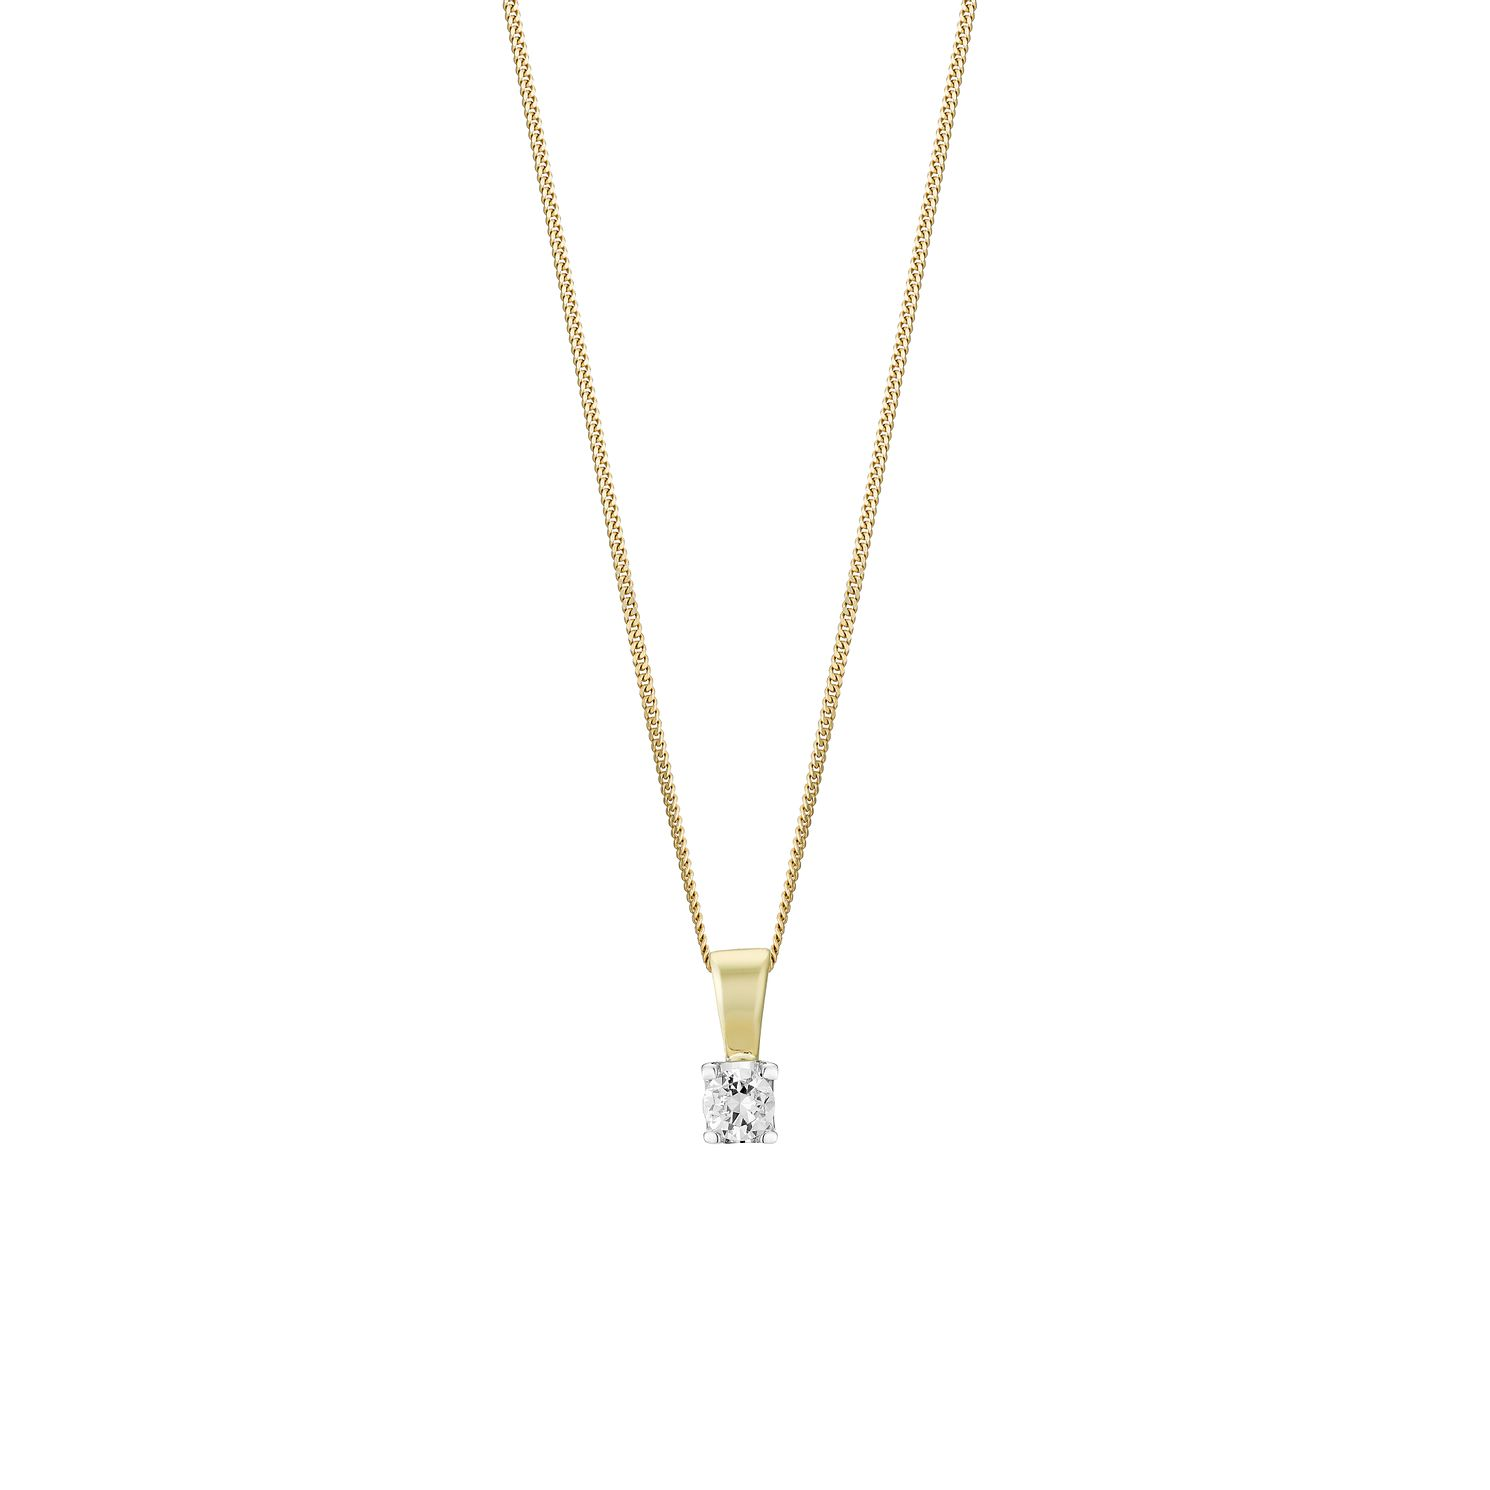 18ct Gold 1/4 Carat Forever Diamond Pendant - Product number 3030288